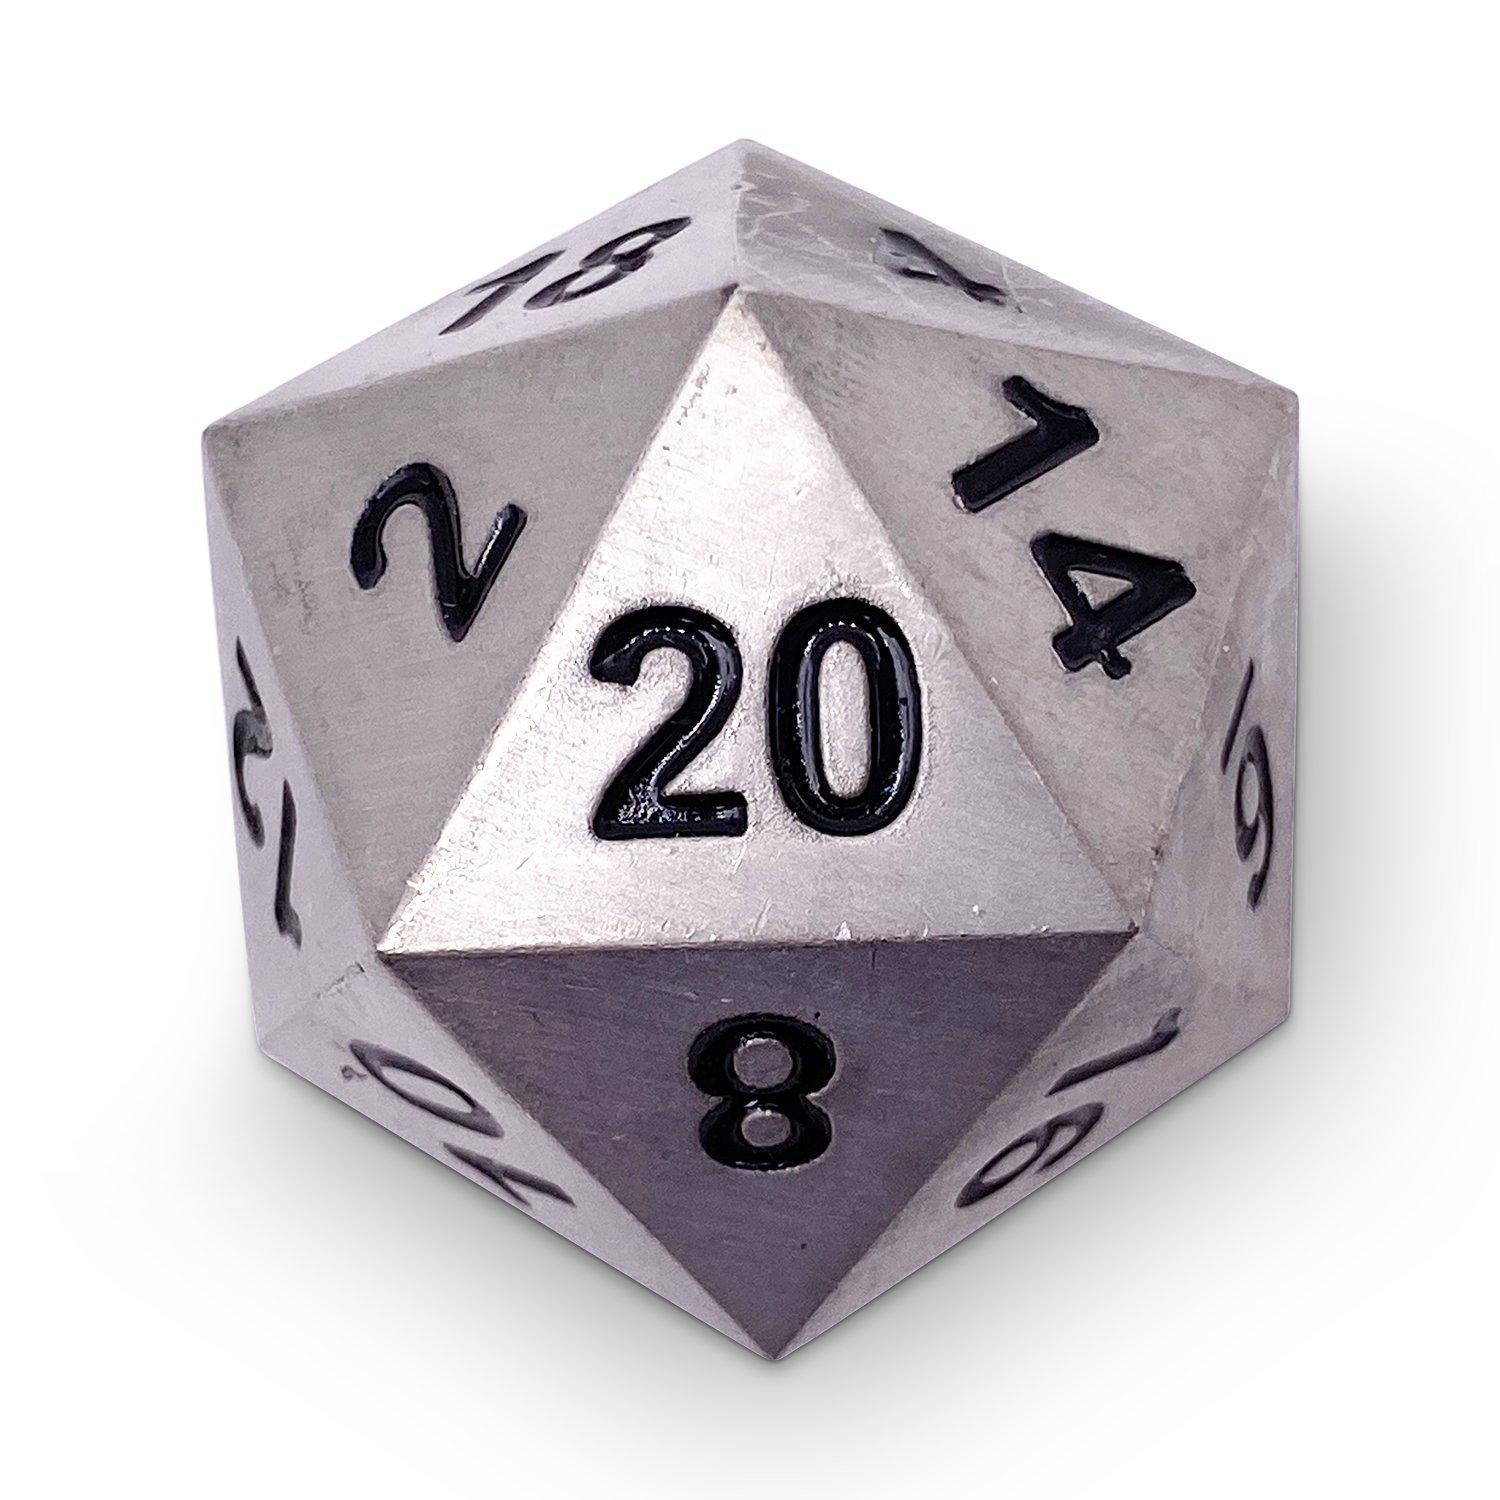 Metallic d20 die looking awesome (if you don't mind me sayin')